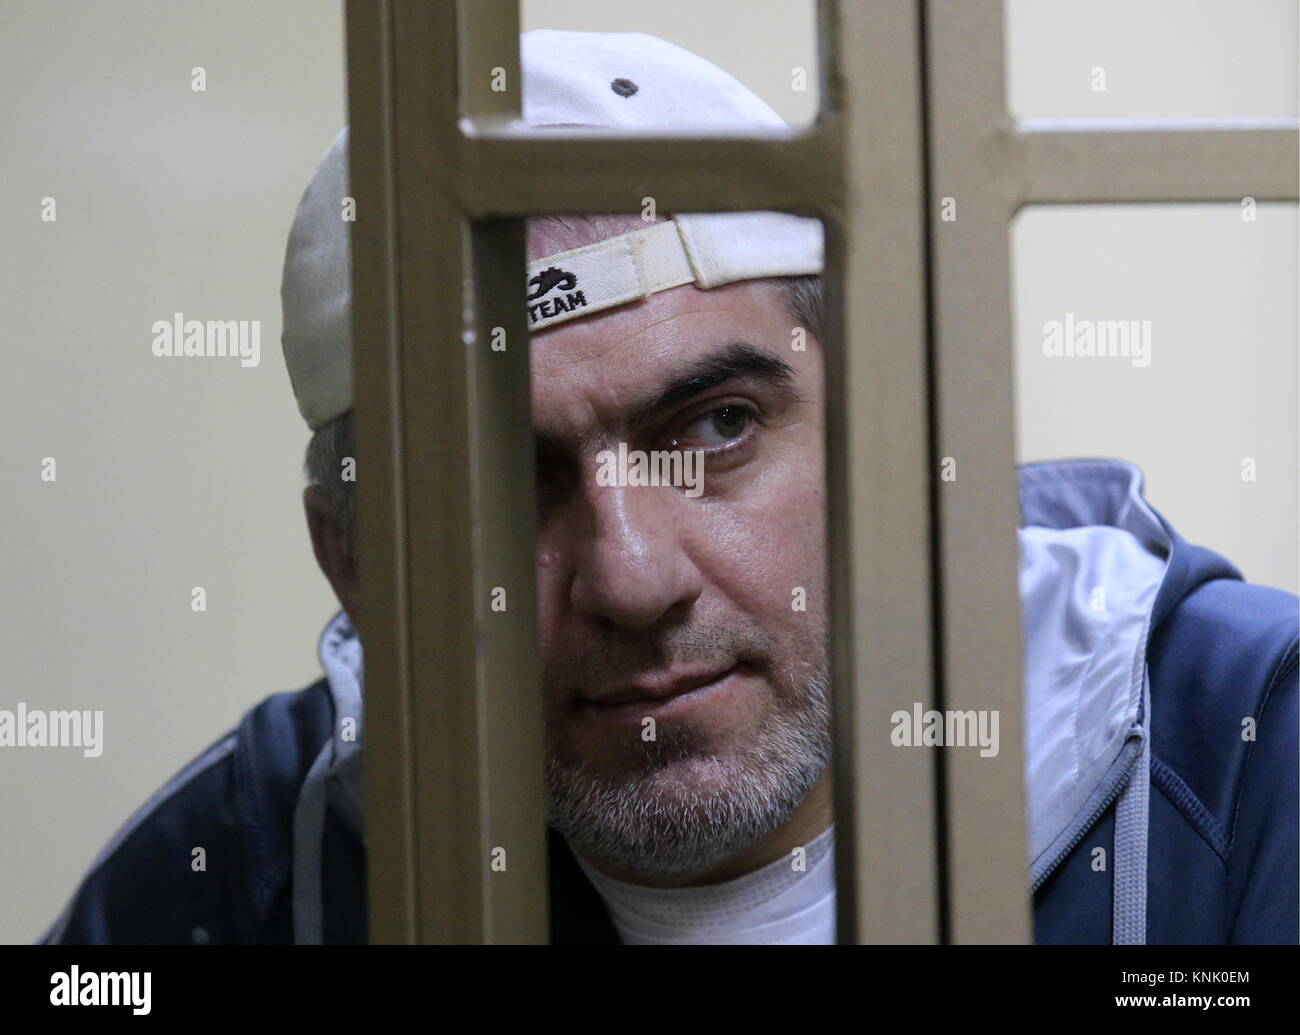 Rostov On Don, Russia. 13th Dec, 2017. Magomed Mazdayev, charged with taking part in a June 1995 attack by armed - Stock Image